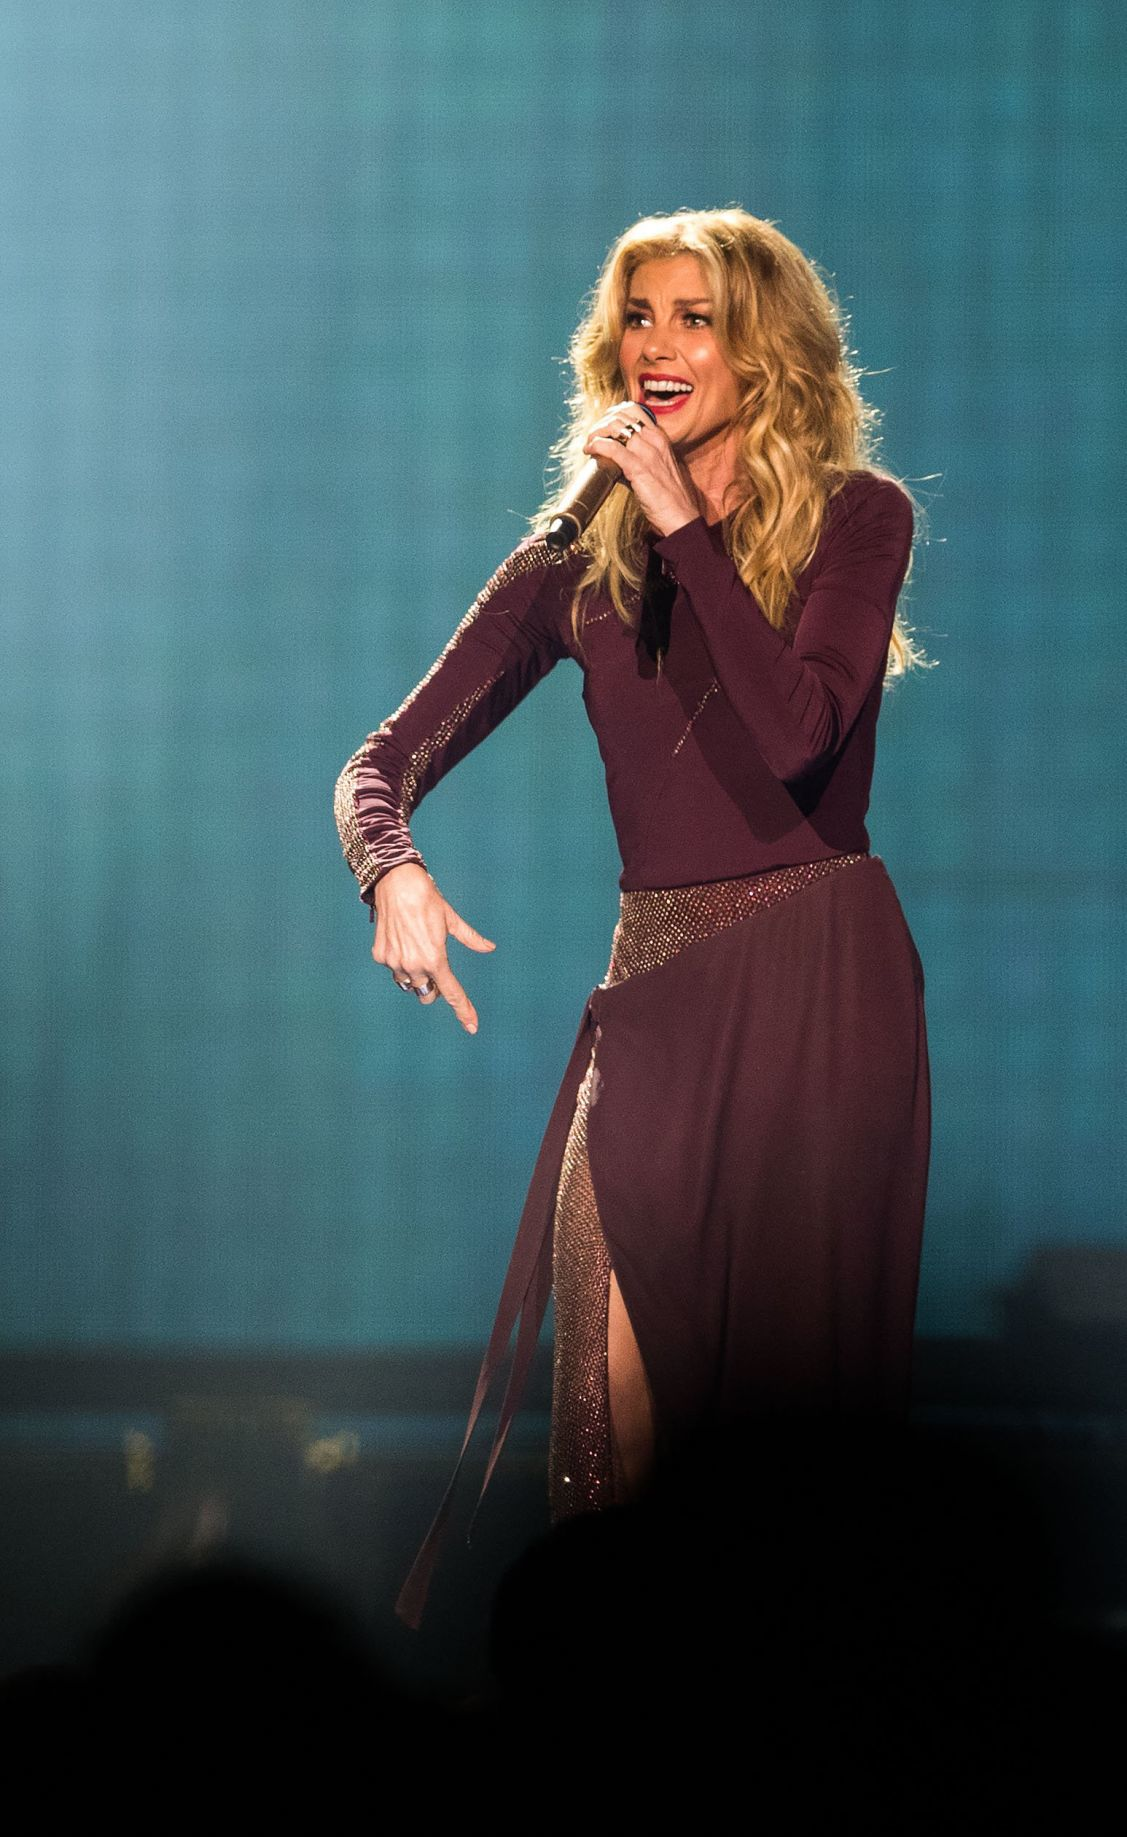 7 (tie). Faith Hill